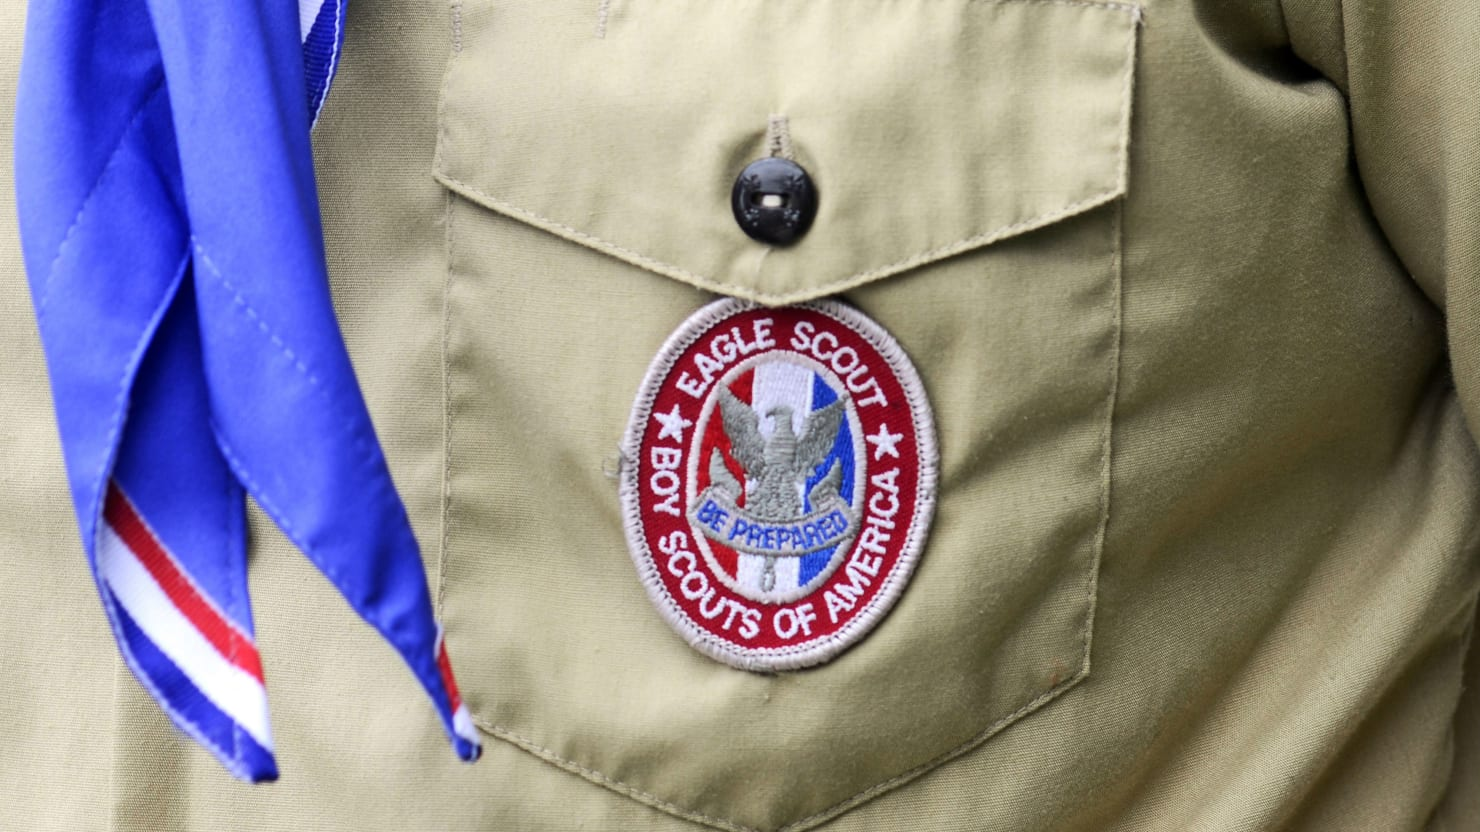 Cub Scout expelled after questioning state senator about race comments